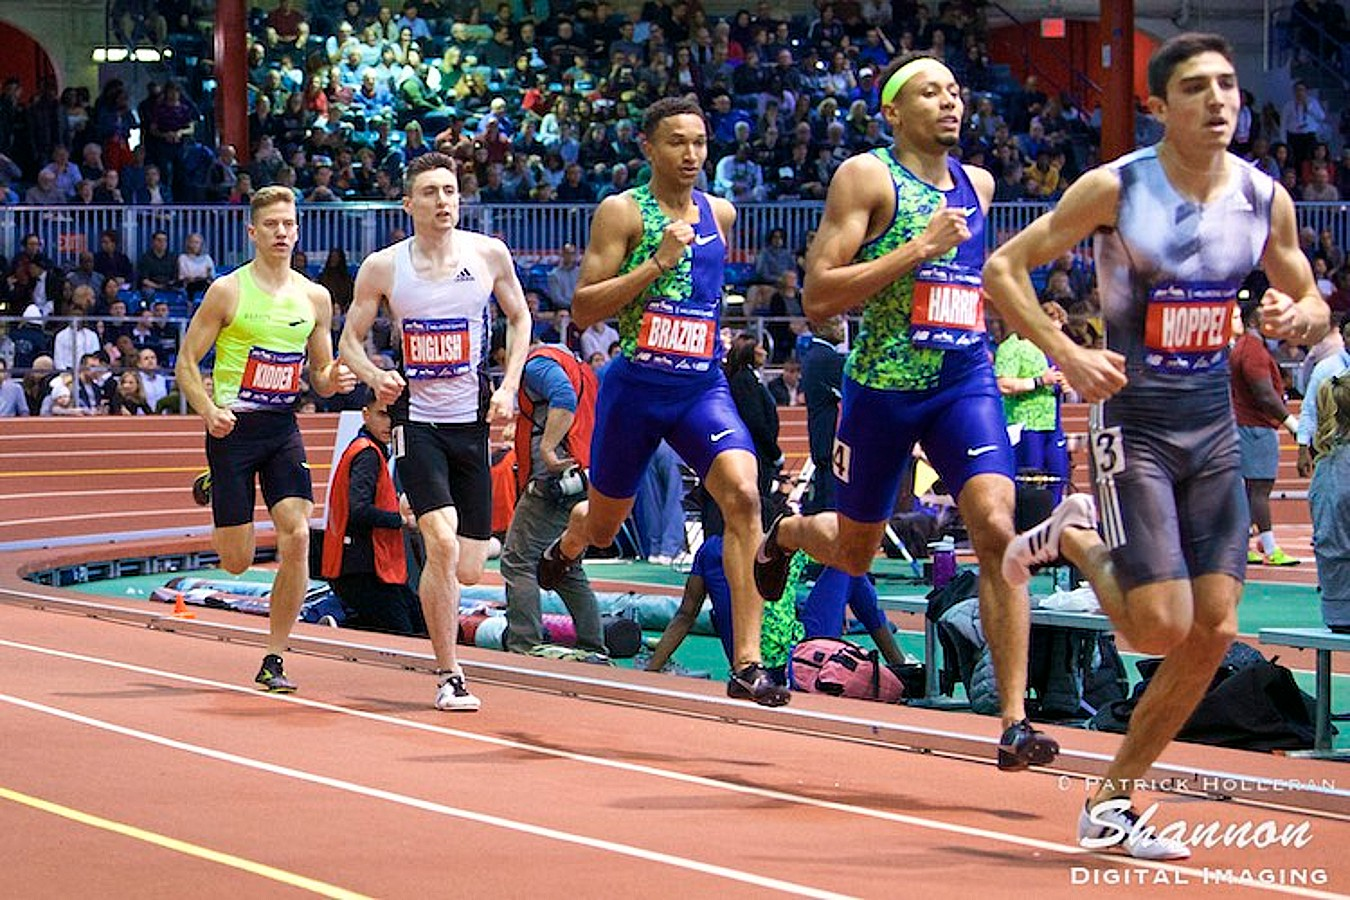 Bryce Hoppel of USA at the 2020 Millrose Games